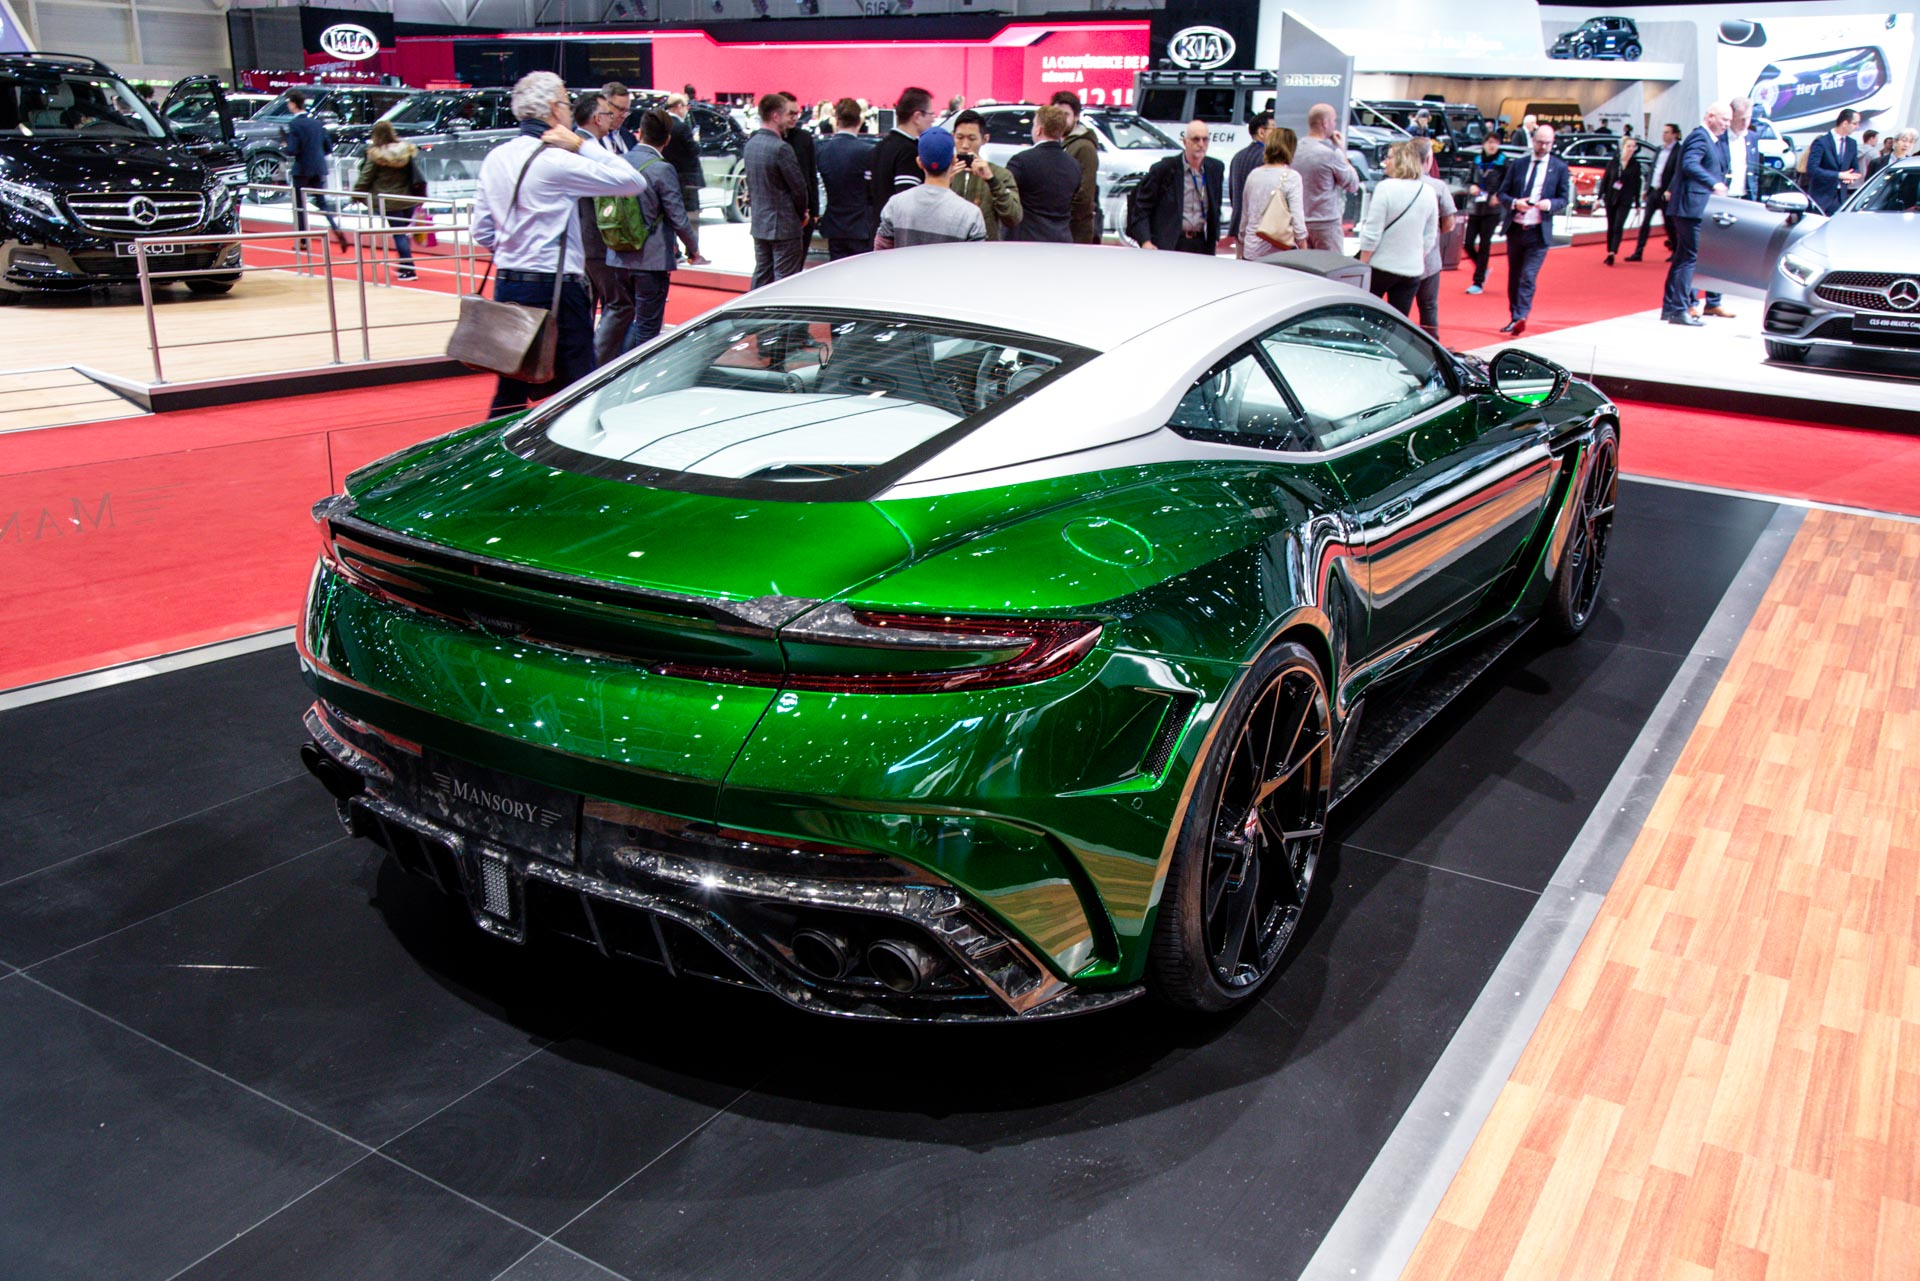 mansory at the geneva motor show 2018 - gtspirit